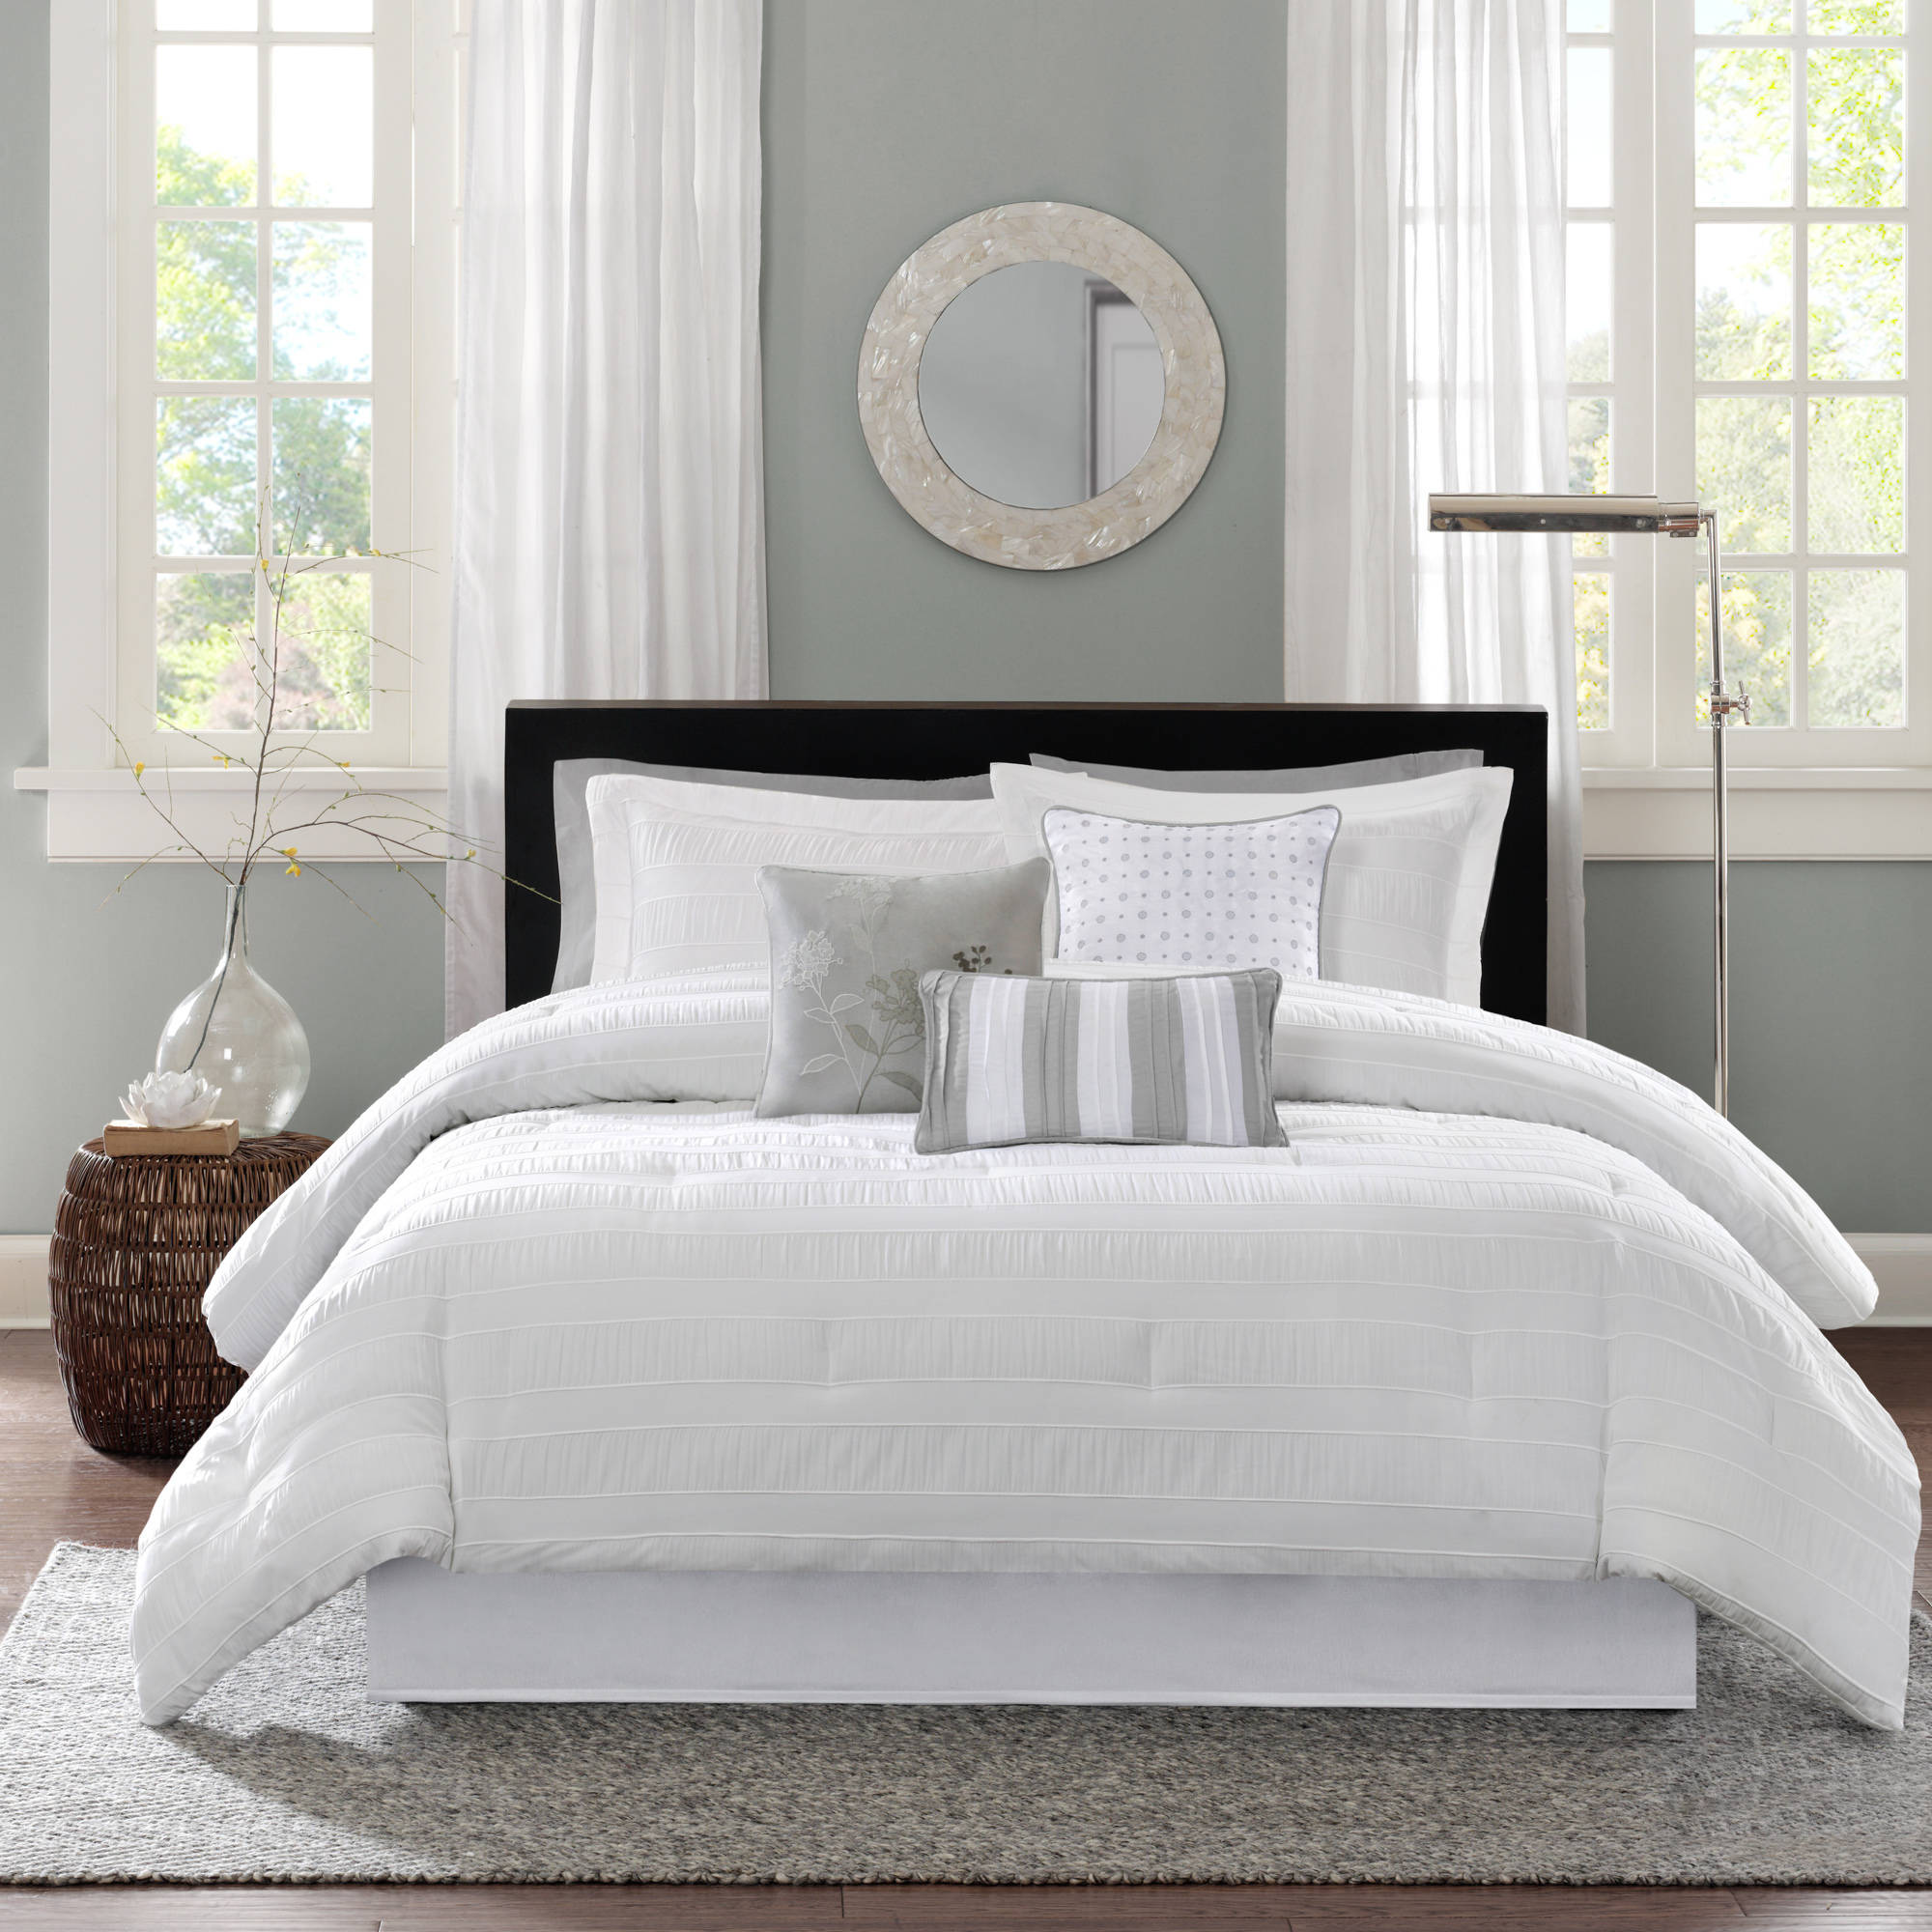 home essence cullen bedding comforter set ebay. Black Bedroom Furniture Sets. Home Design Ideas